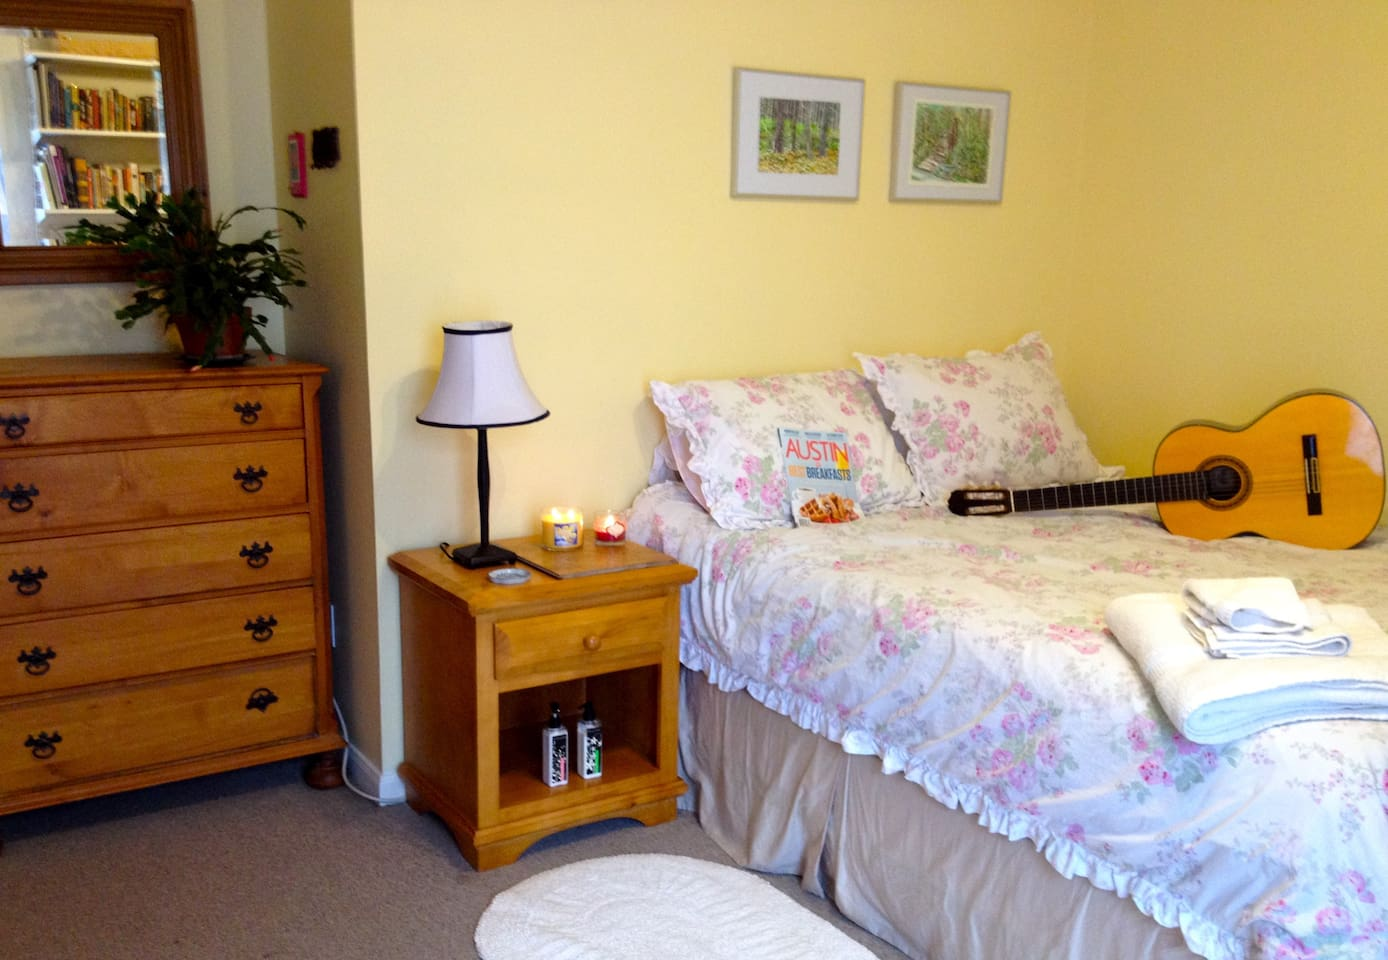 Your comfy bedroom. This is 1/2 room; other half has long Elfa unit with shelves and white desktop.